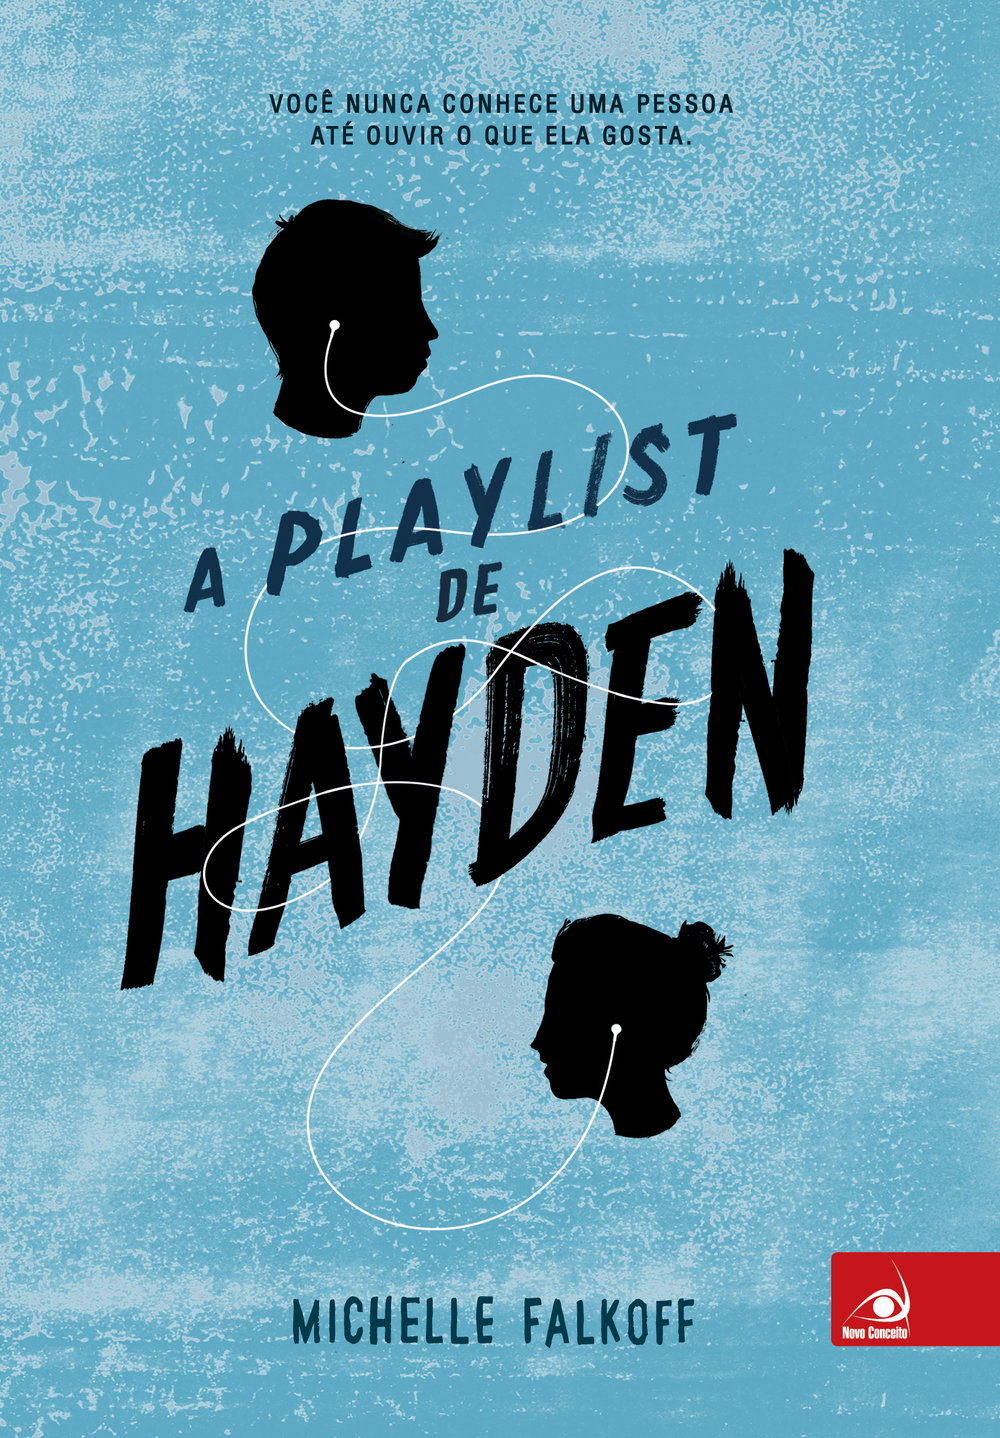 Portuguese edition of Playlist for the Dead